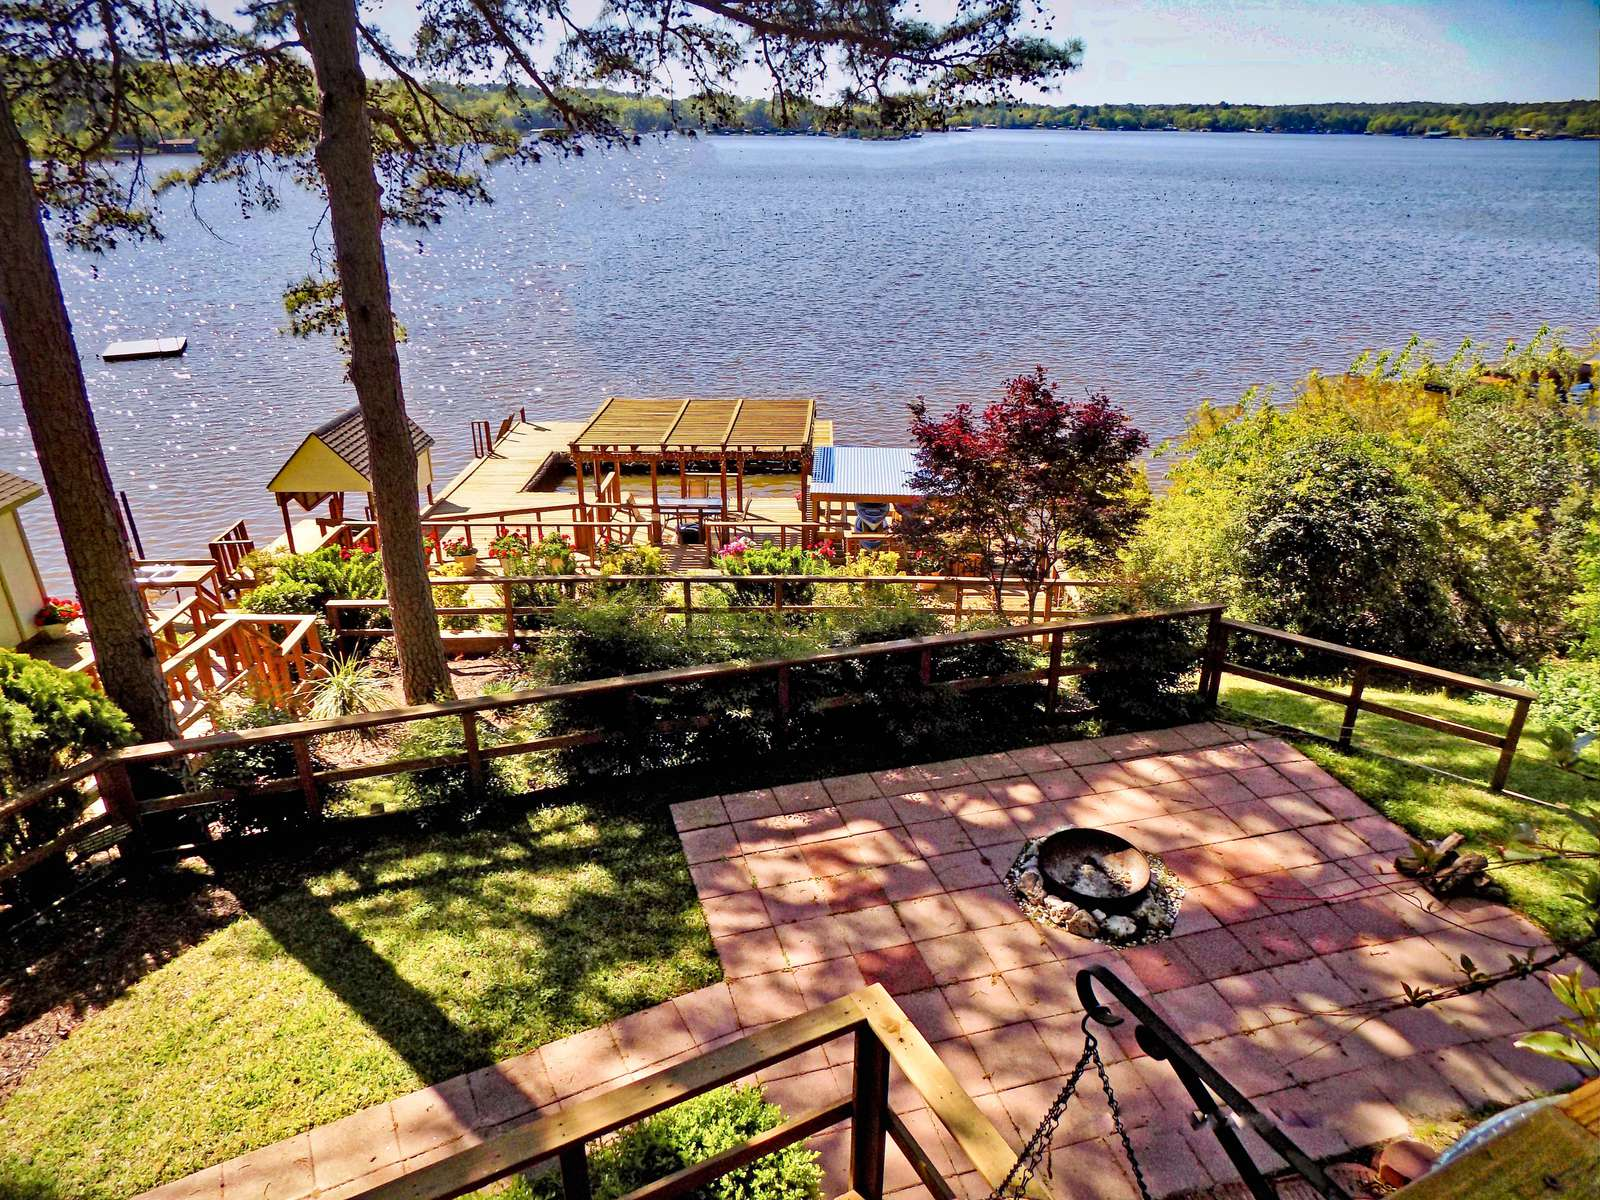 The view off the main deck is stunning. We love the water view with a shoreline not too distant. Take note of the firepit for making smores with the kids.